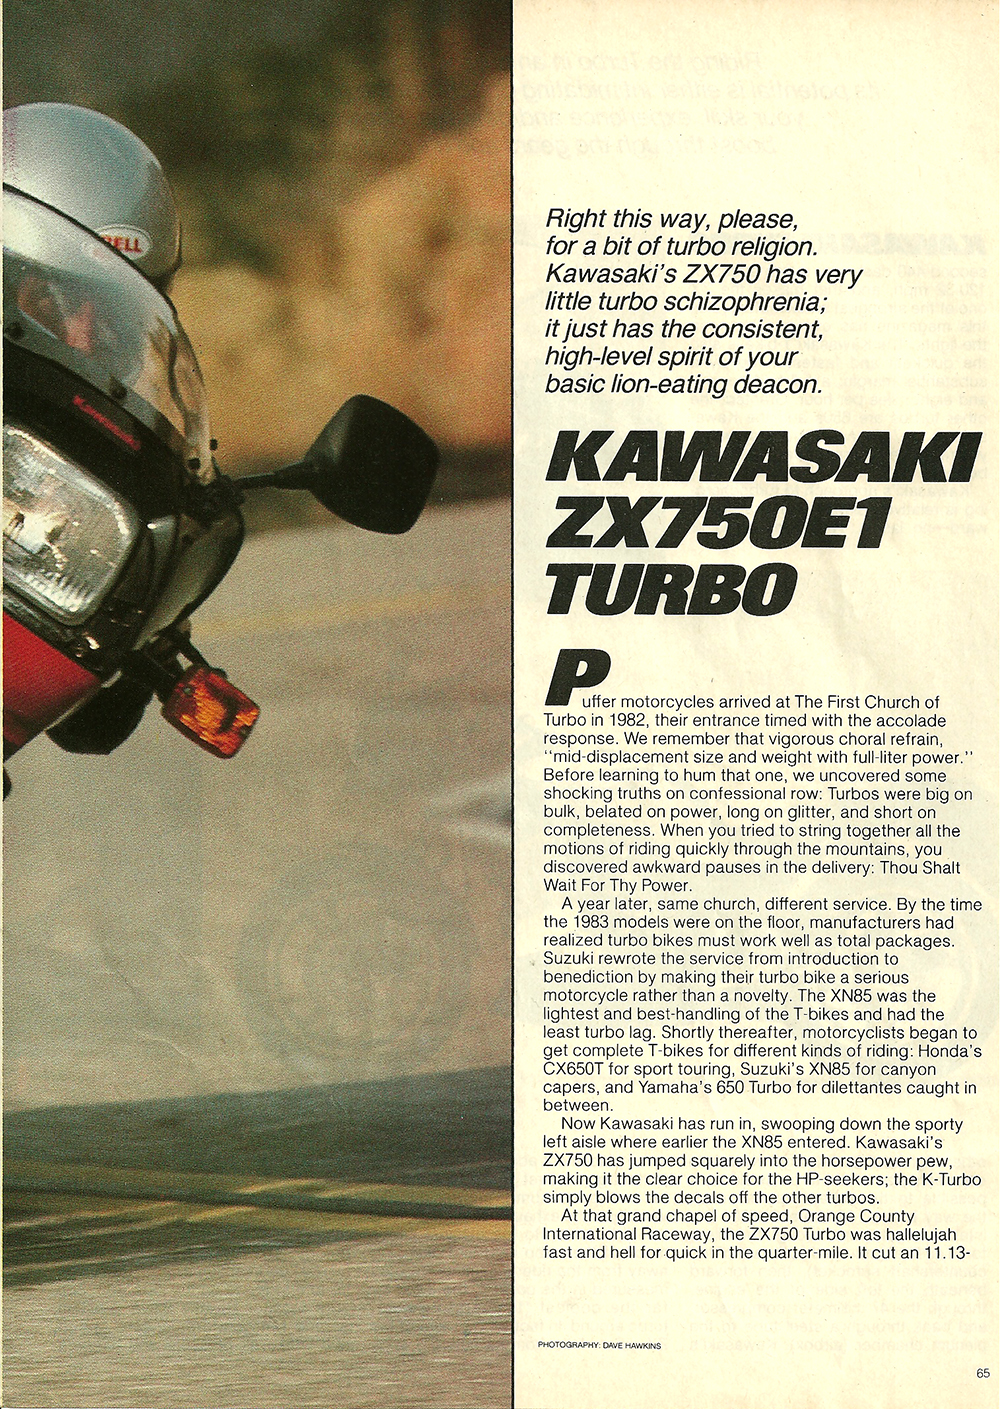 1984 Kawasaki ZX750E1 turbo road test 2.jpg